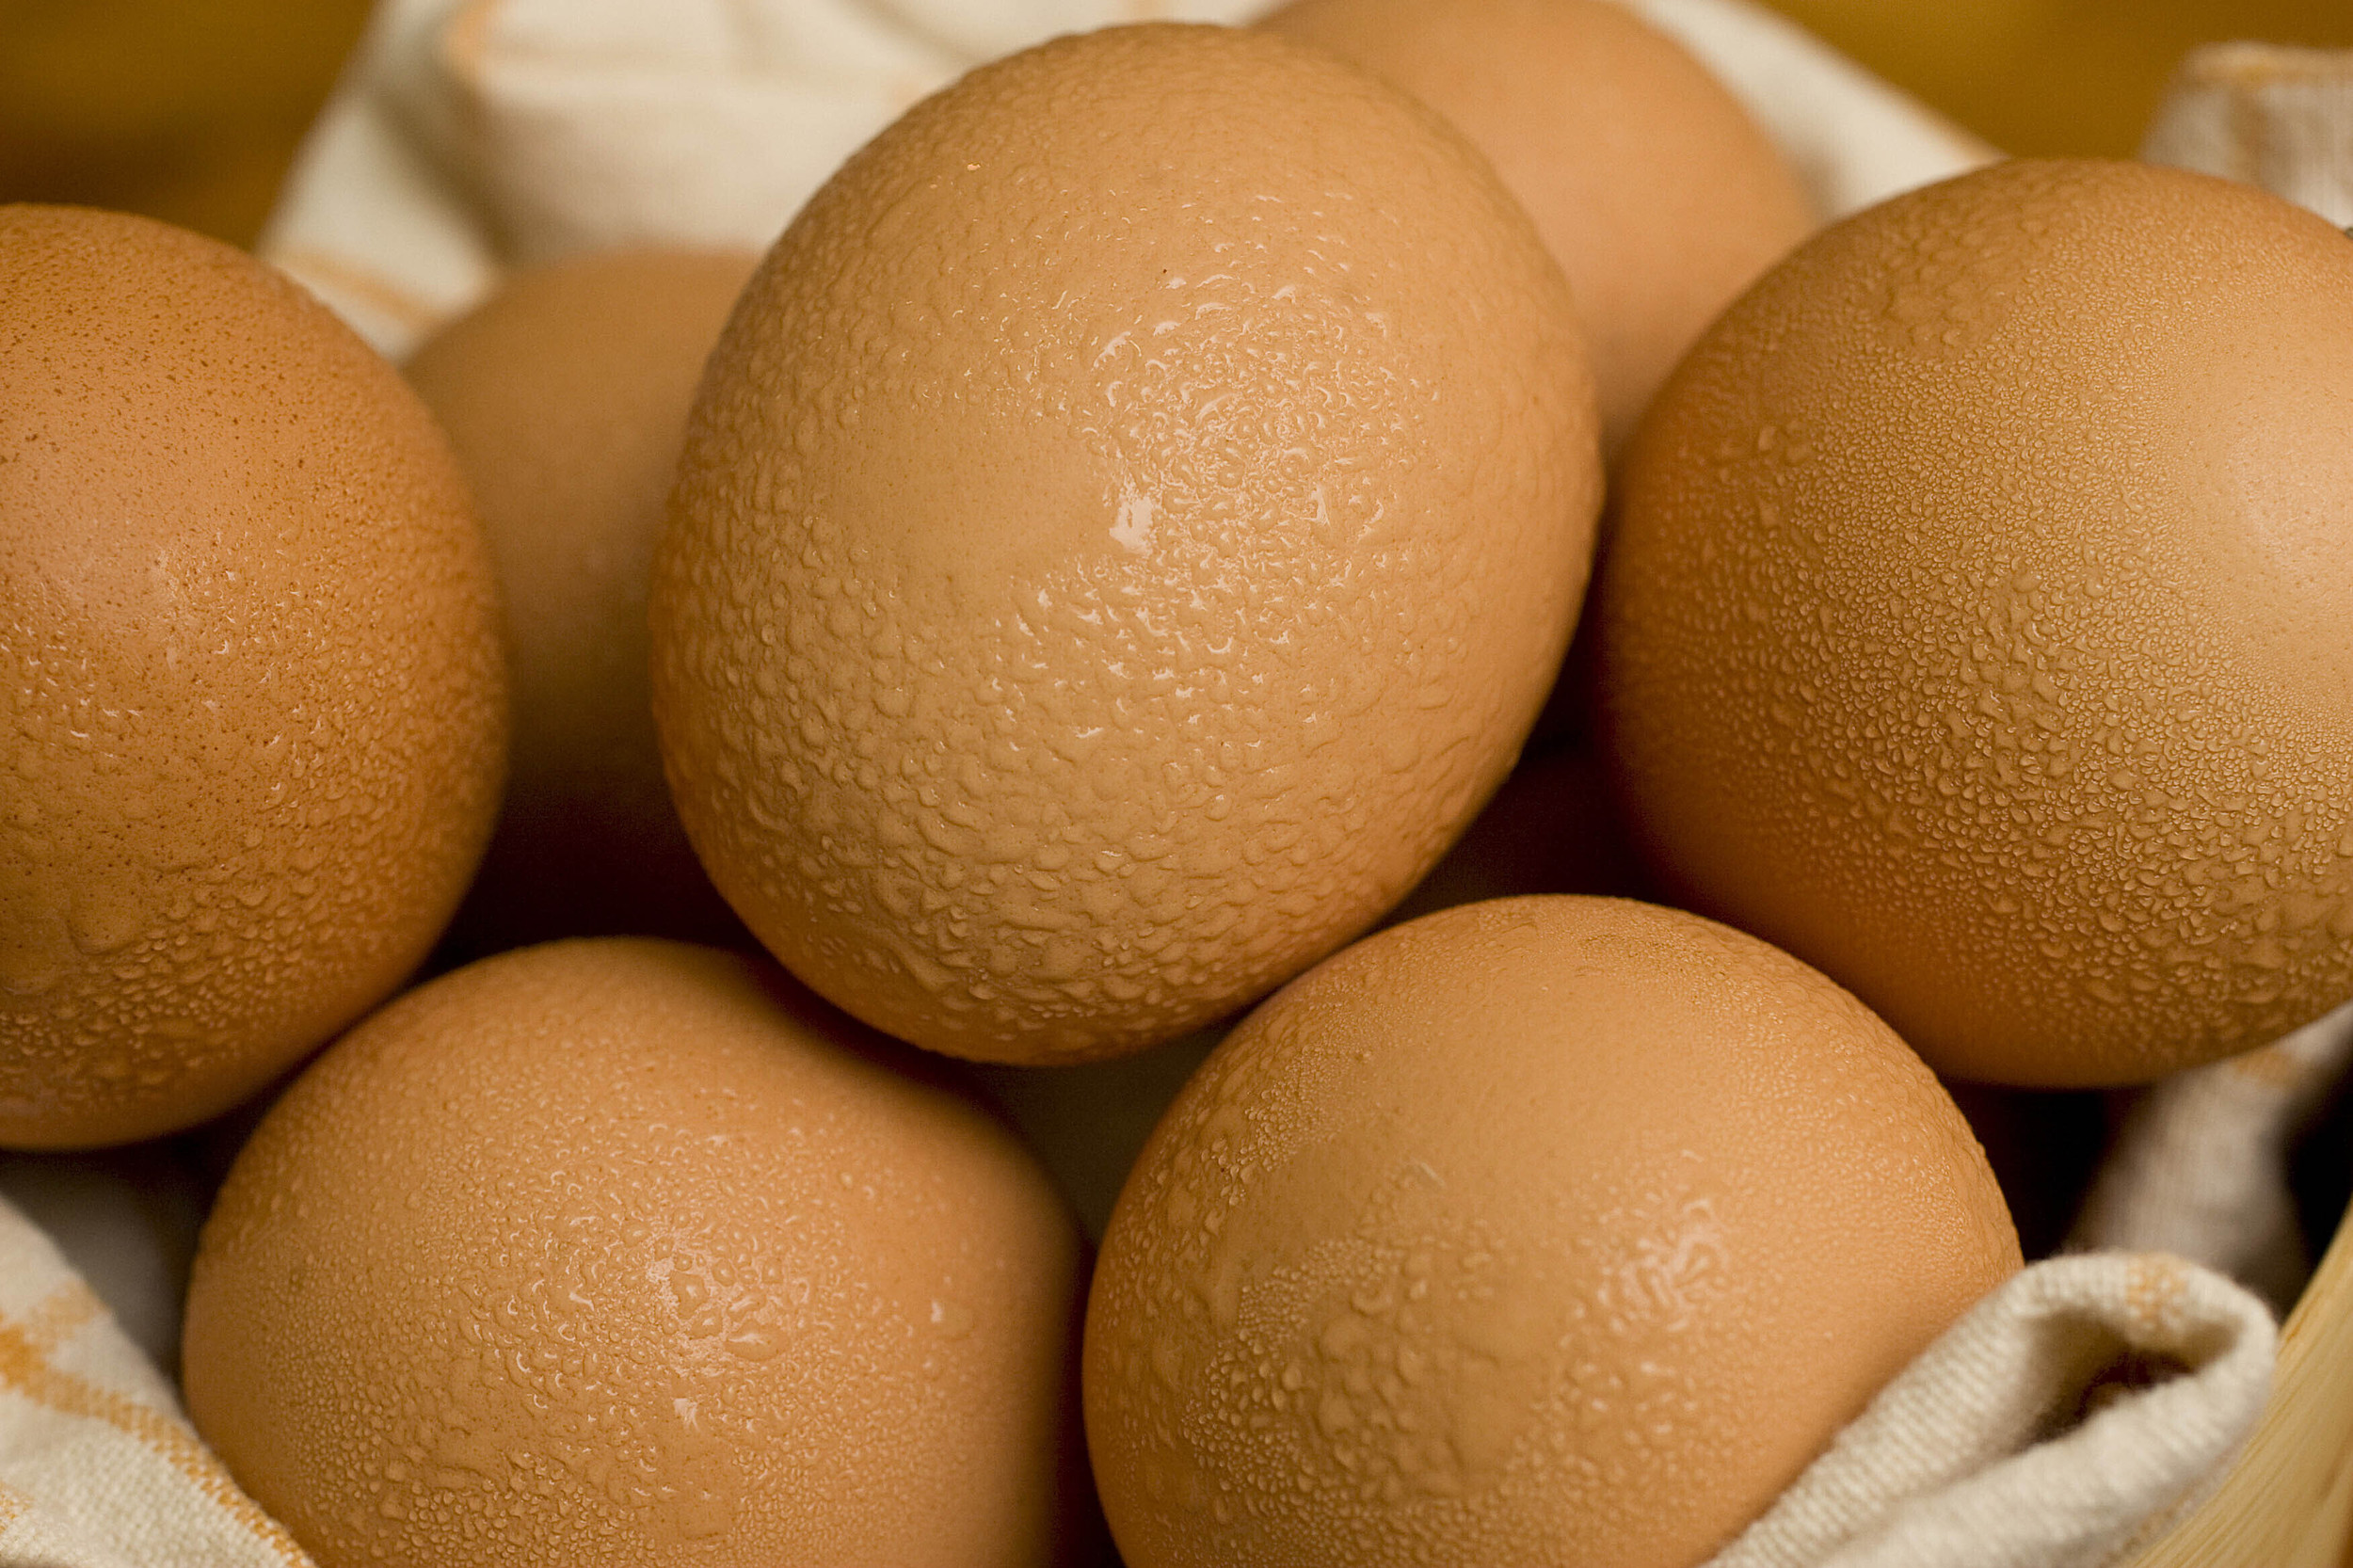 Food Poisoning Linked to Hard-Boiled Eggs in Food Service